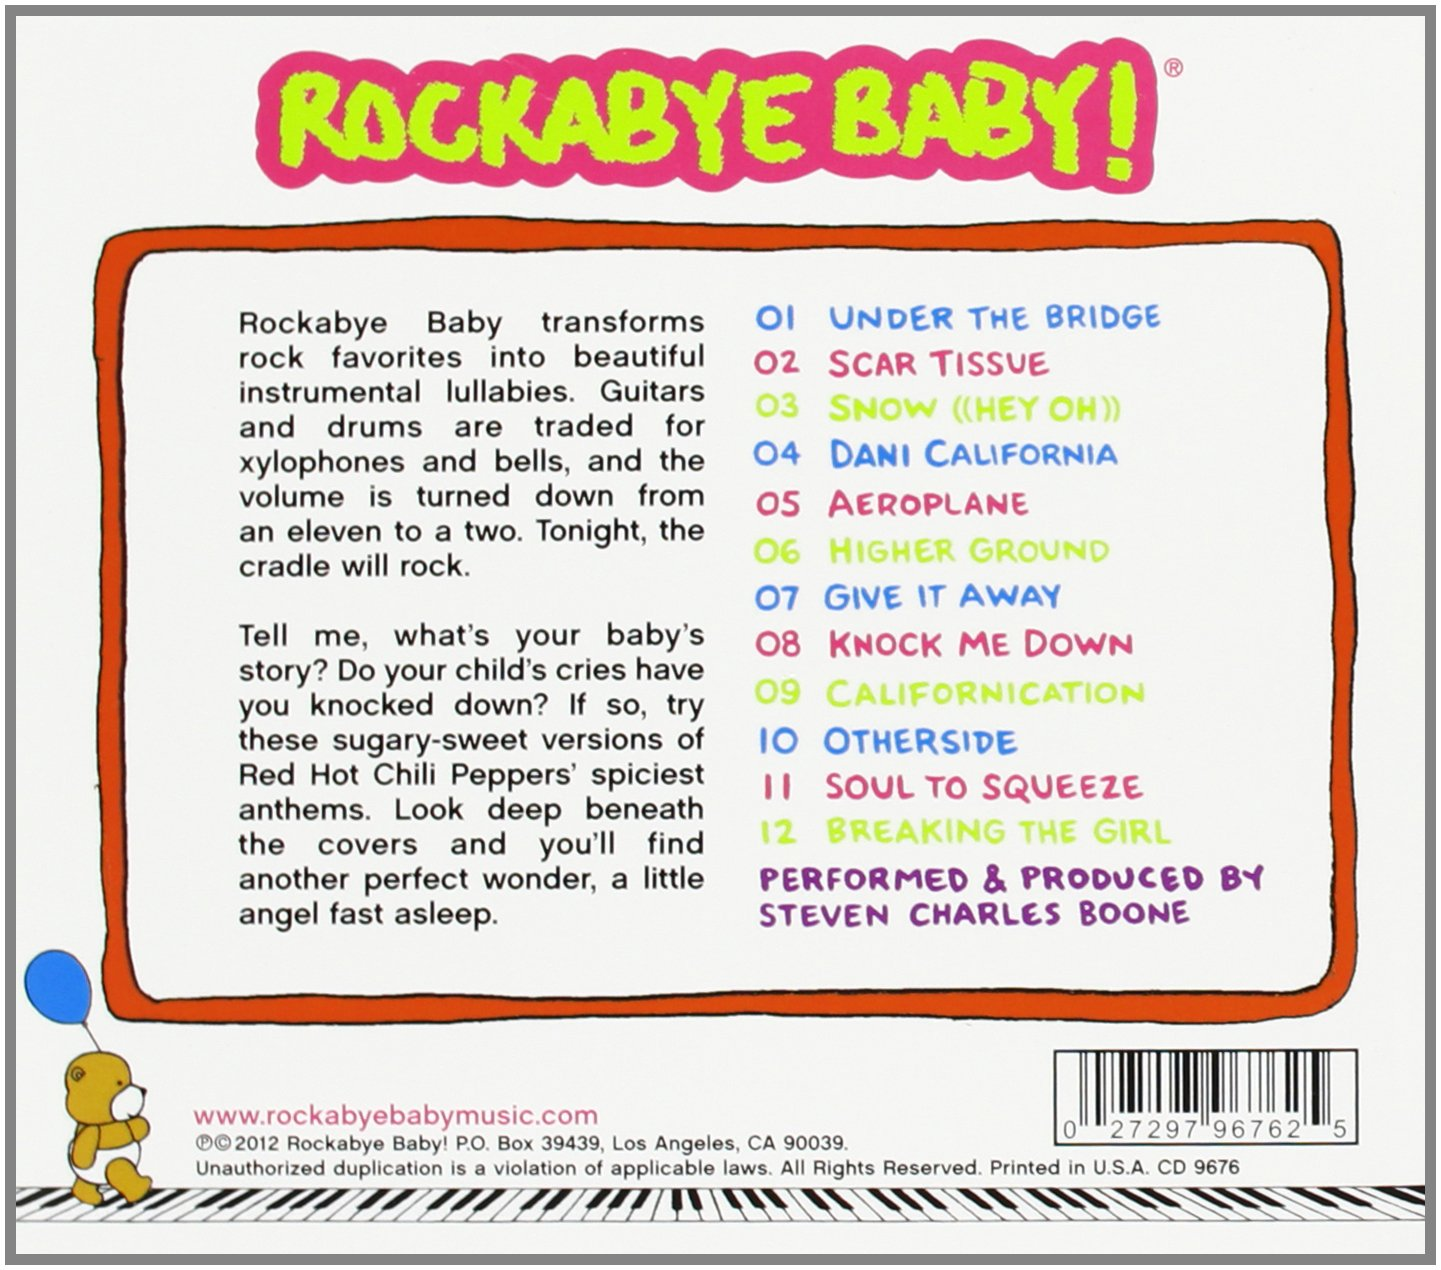 Rockabye Baby! Lullaby Renditions of Red Hot Chili Peppers